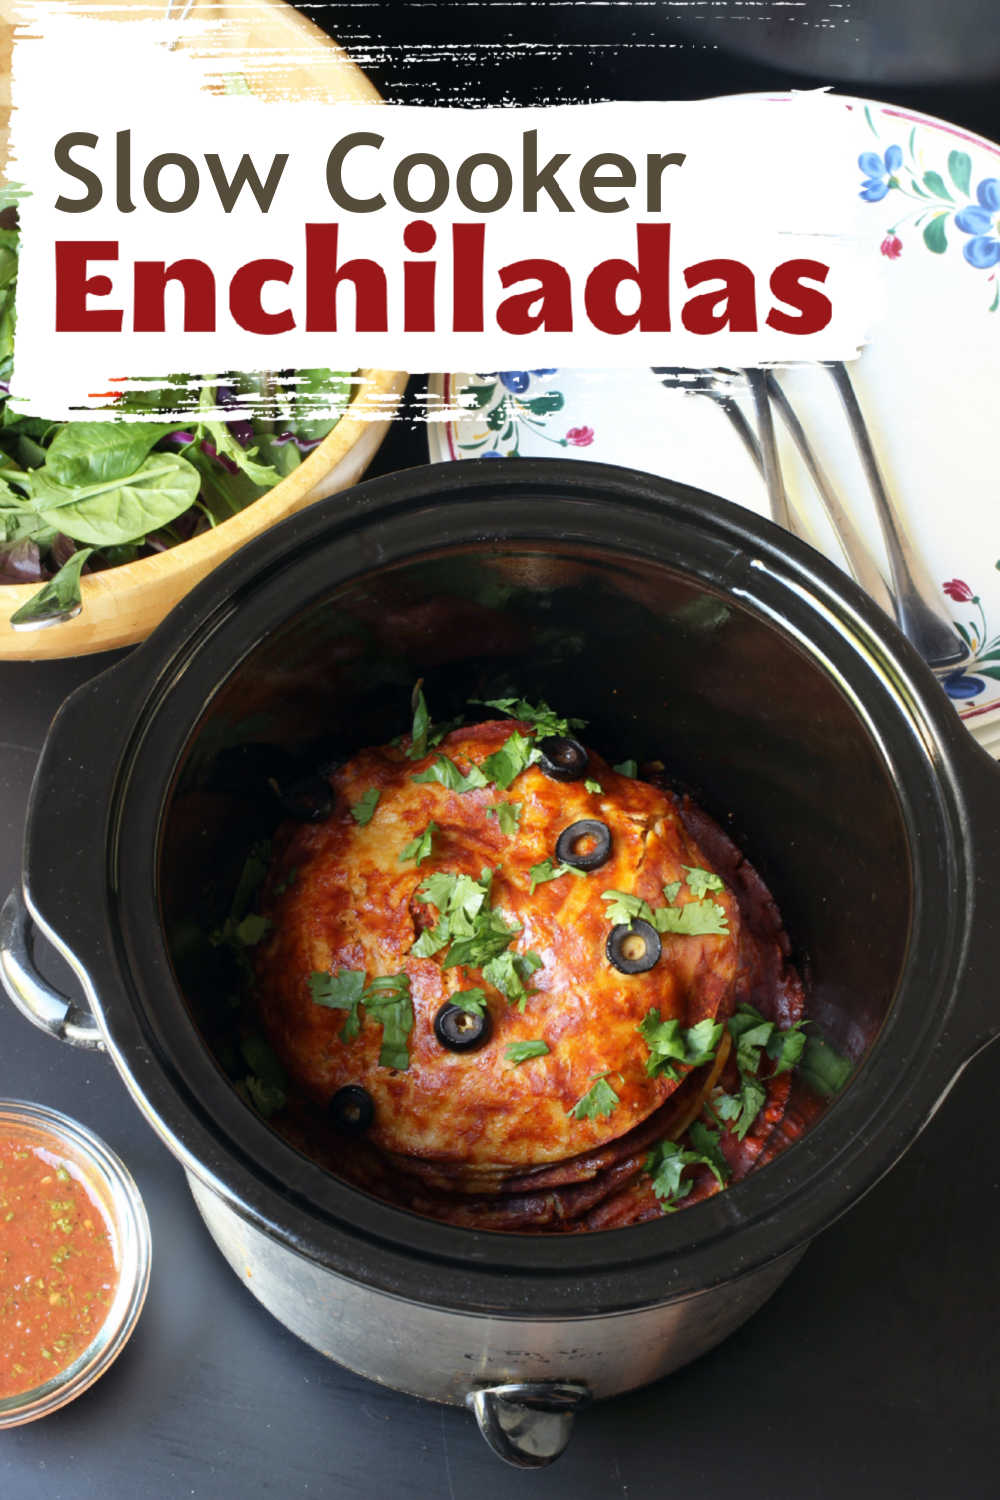 A Slow cooker full of stacked enchiladas